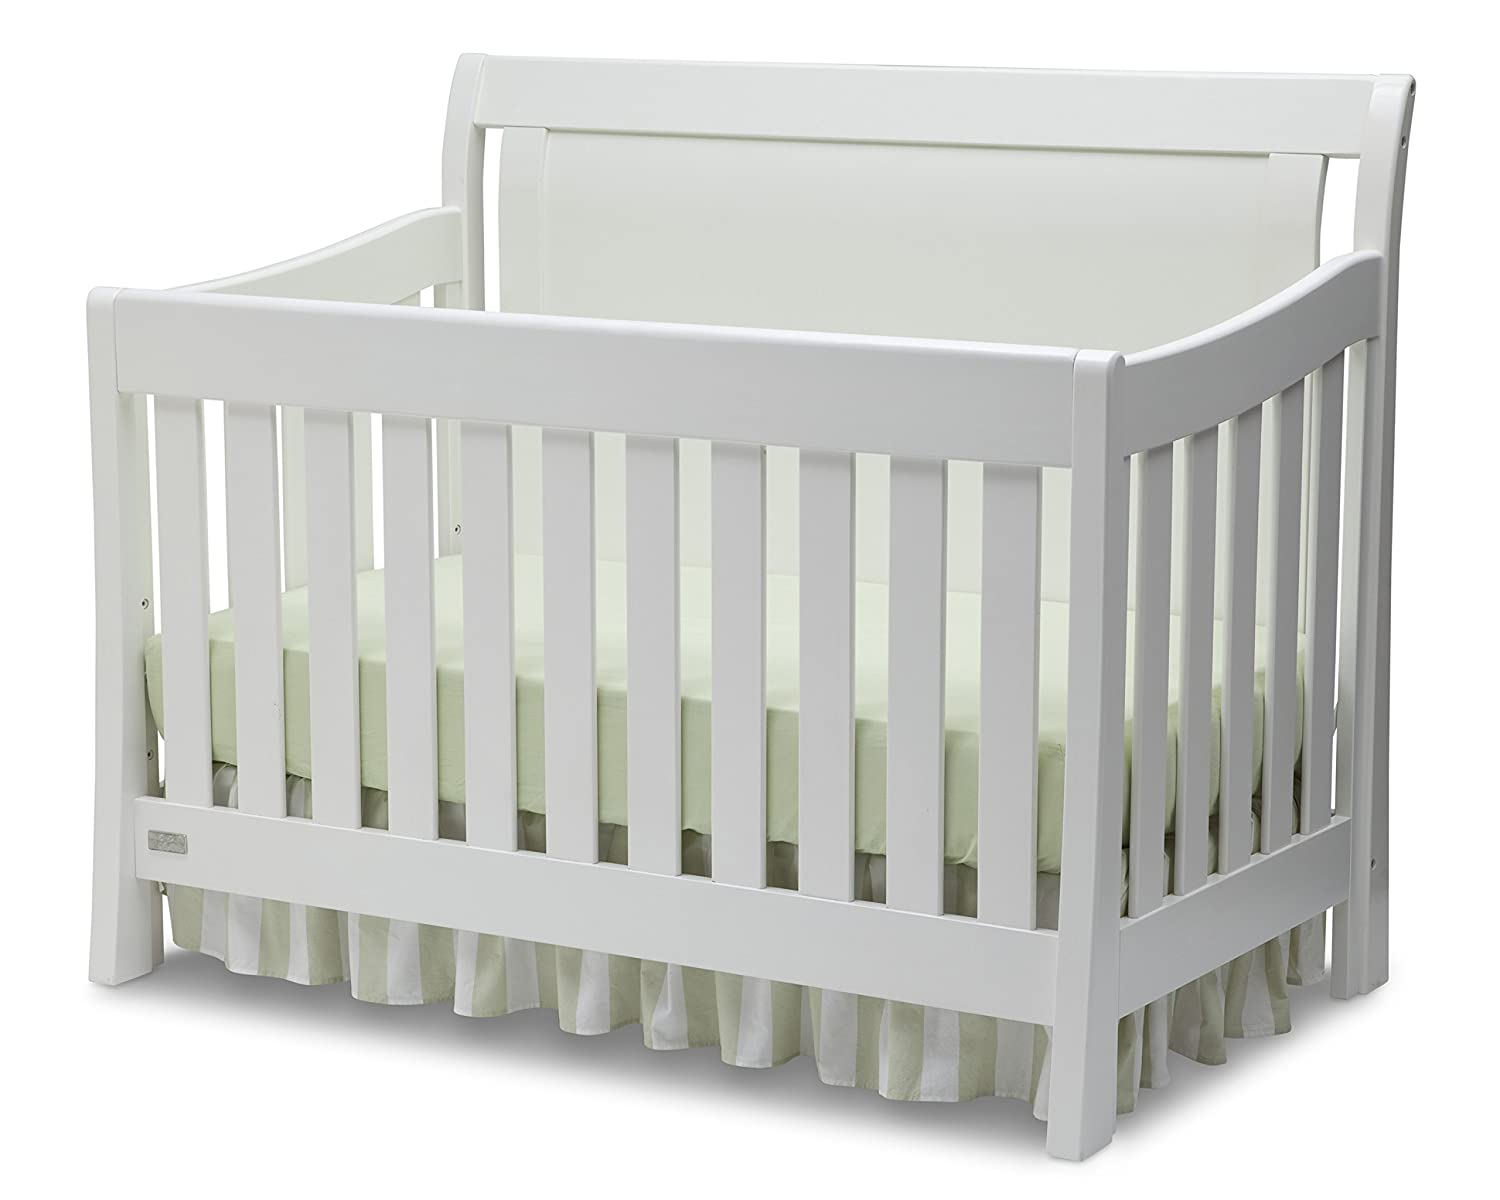 nursery for wonderful cribs circle restoration round setsr cheap boys bedding hardware by sets baby crib neutral dijizz